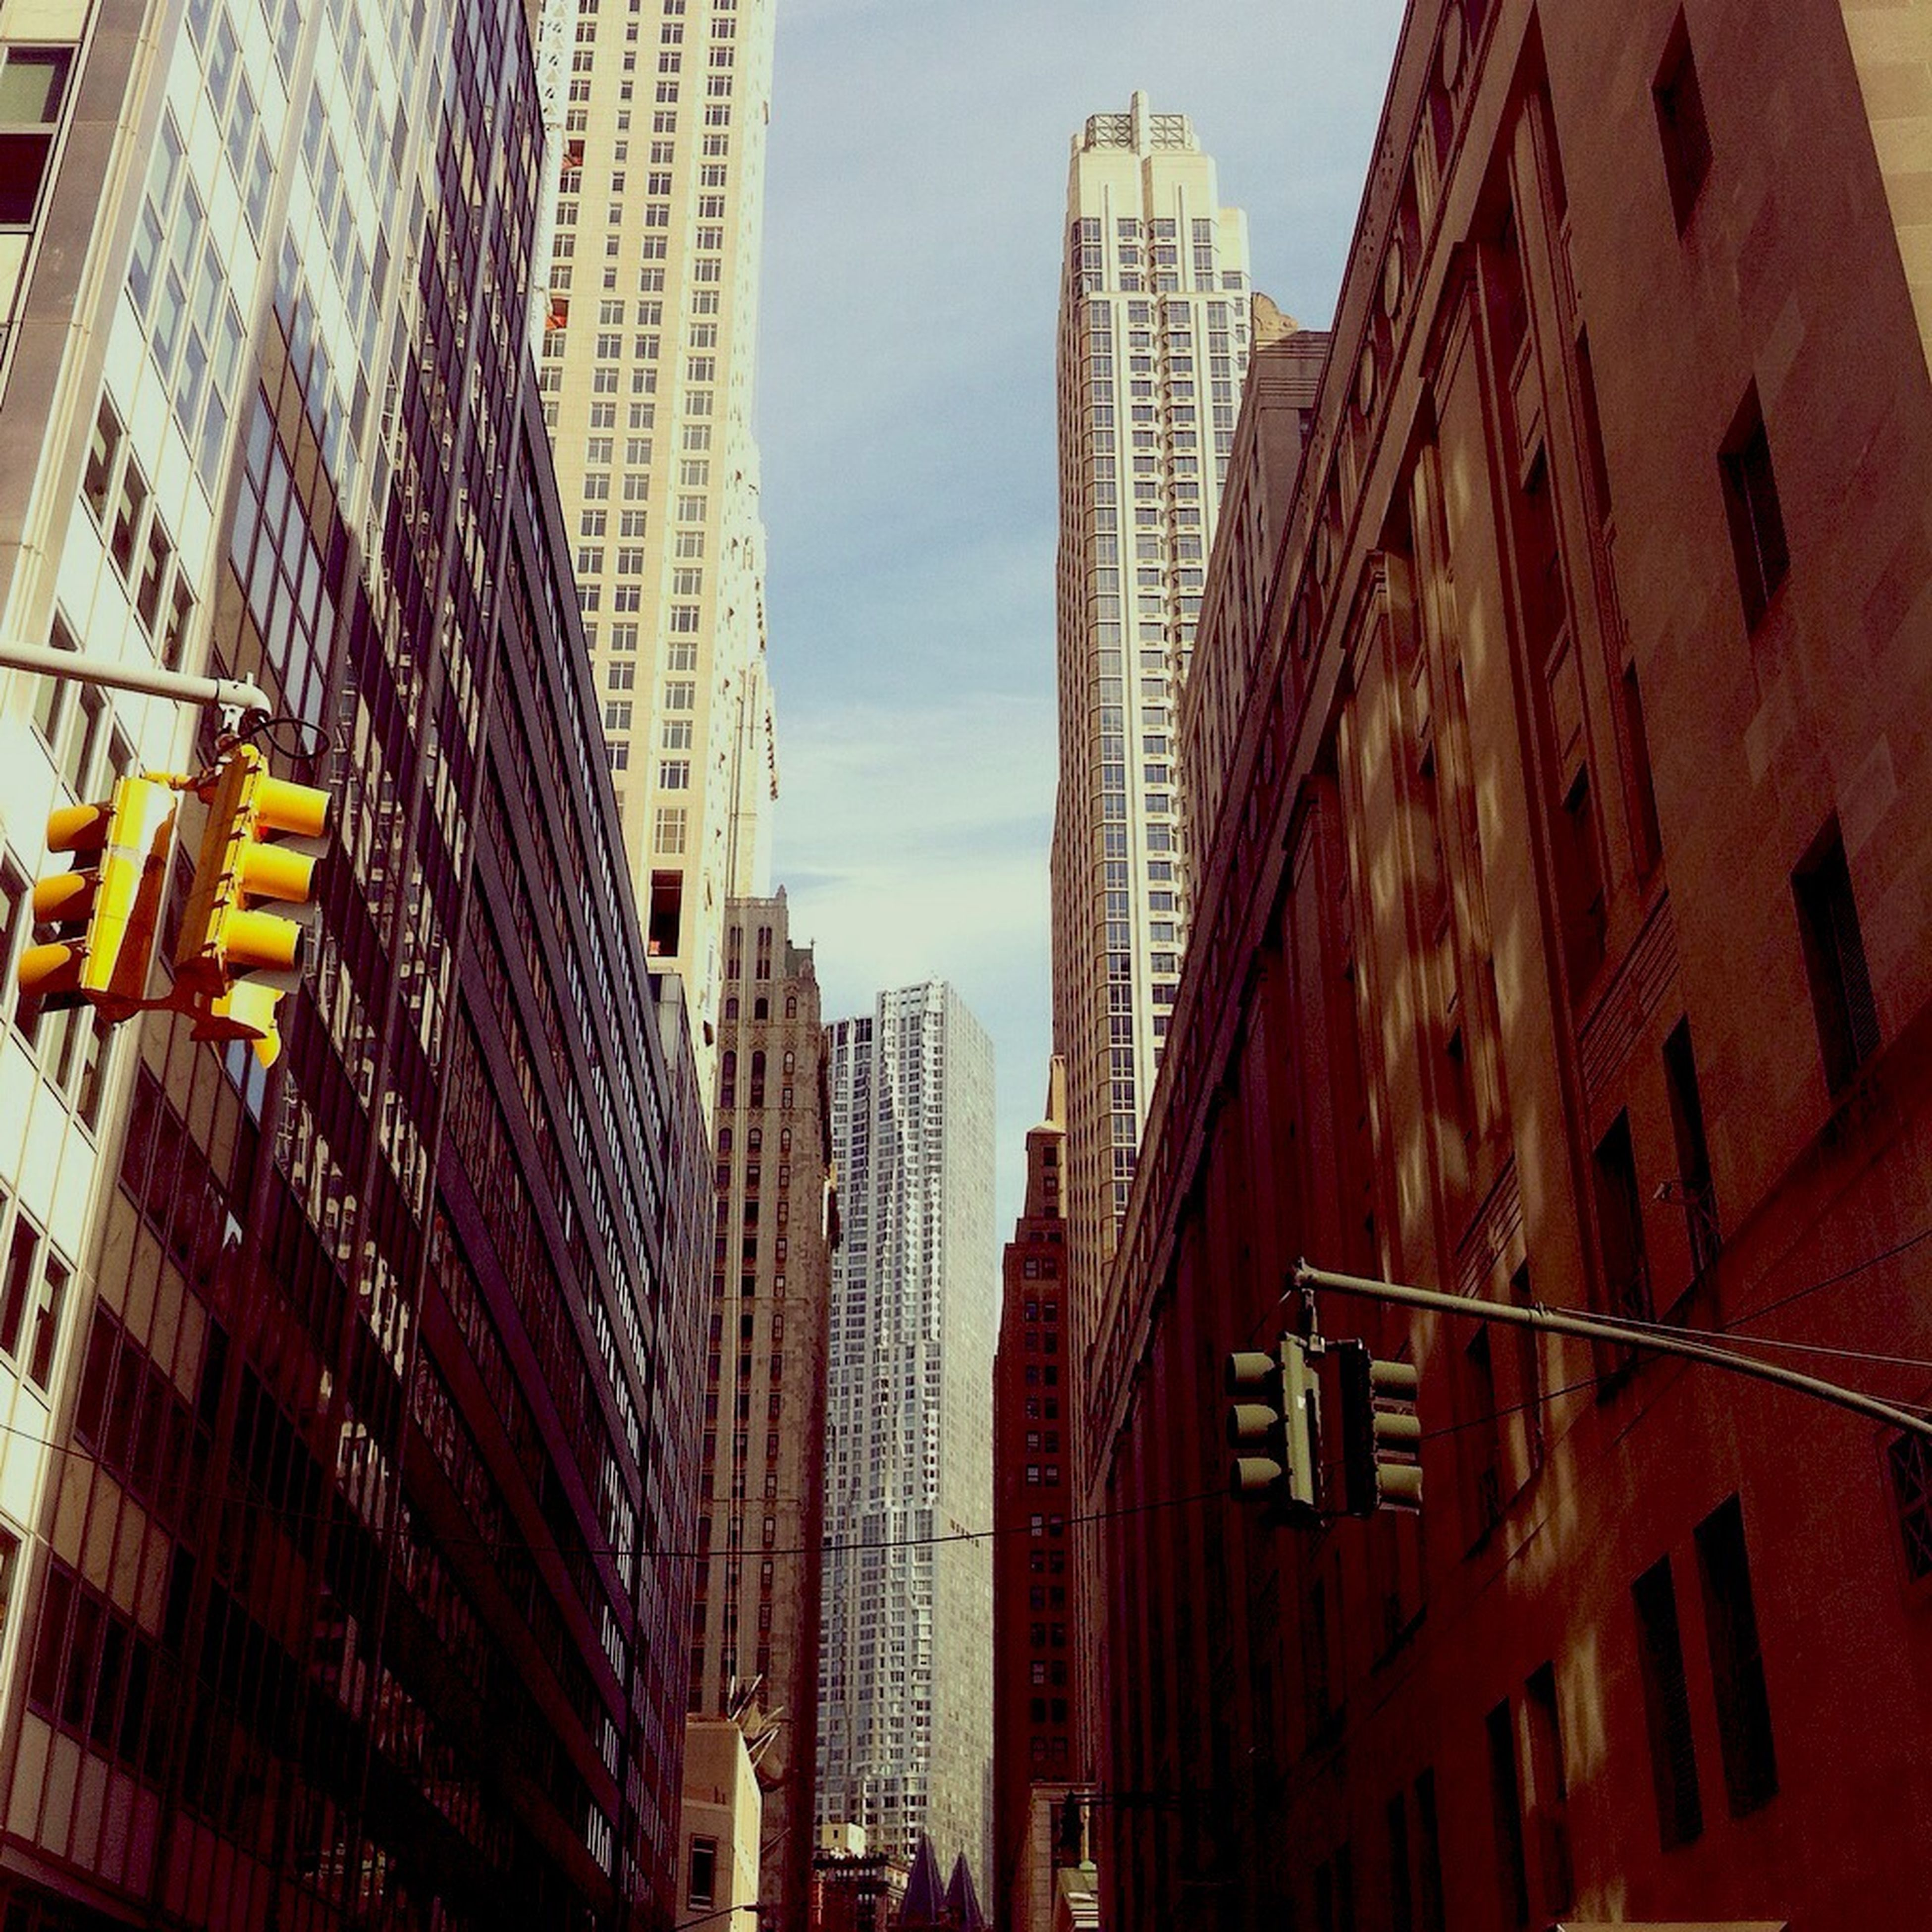 building exterior, architecture, built structure, city, skyscraper, office building, low angle view, tall - high, modern, tower, building, city life, residential building, sky, day, tall, outdoors, no people, clear sky, residential structure